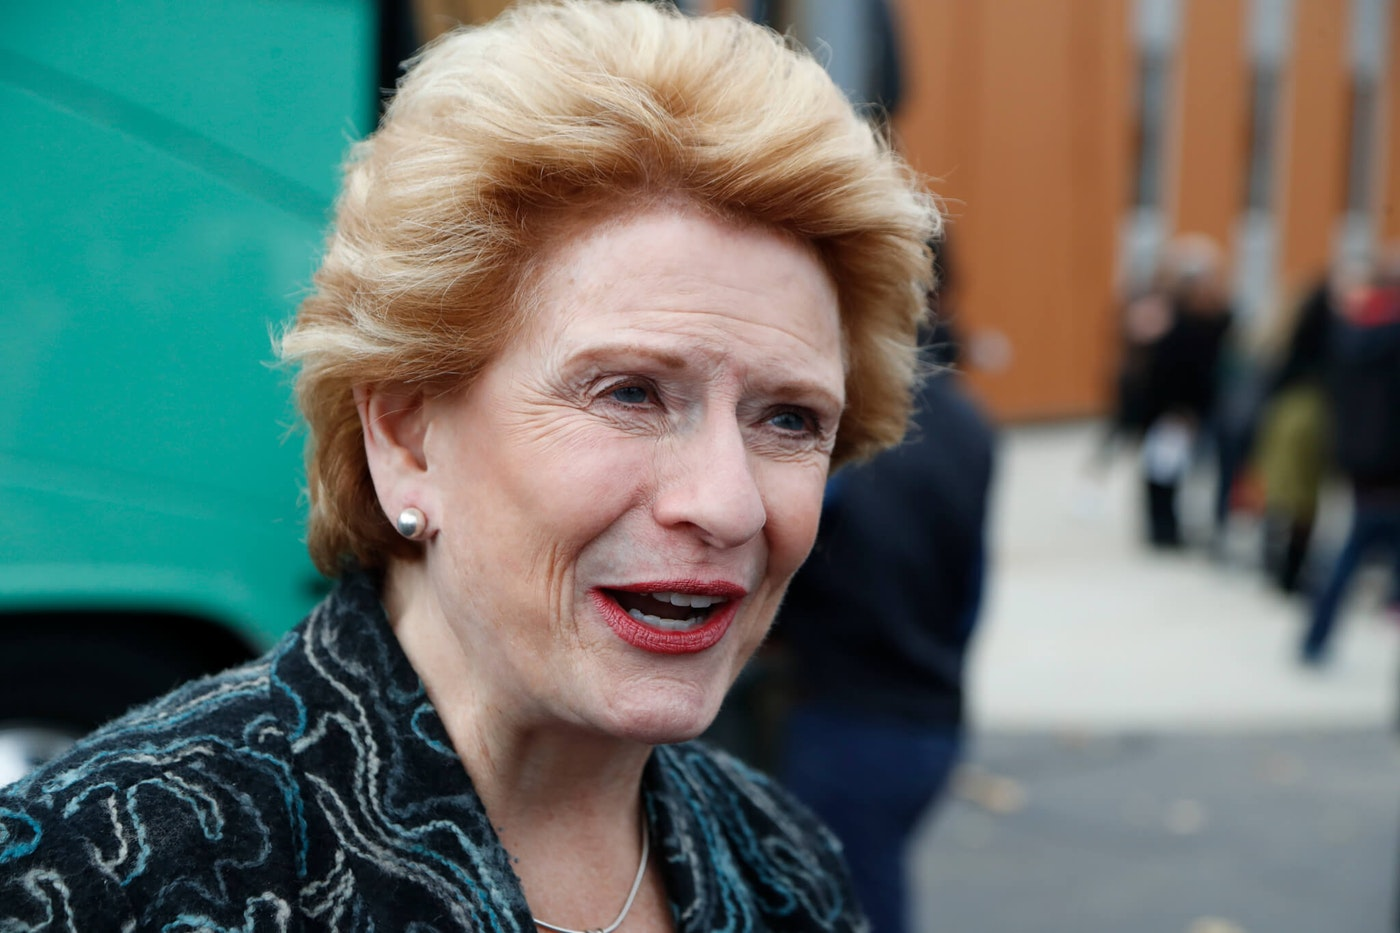 Sen. Debbie Stabenow, D-Mich., is interviewed during a campaign stop, Sunday, Nov. 4, 2018, in Detroit. (AP Photo/Carlos Osorio)